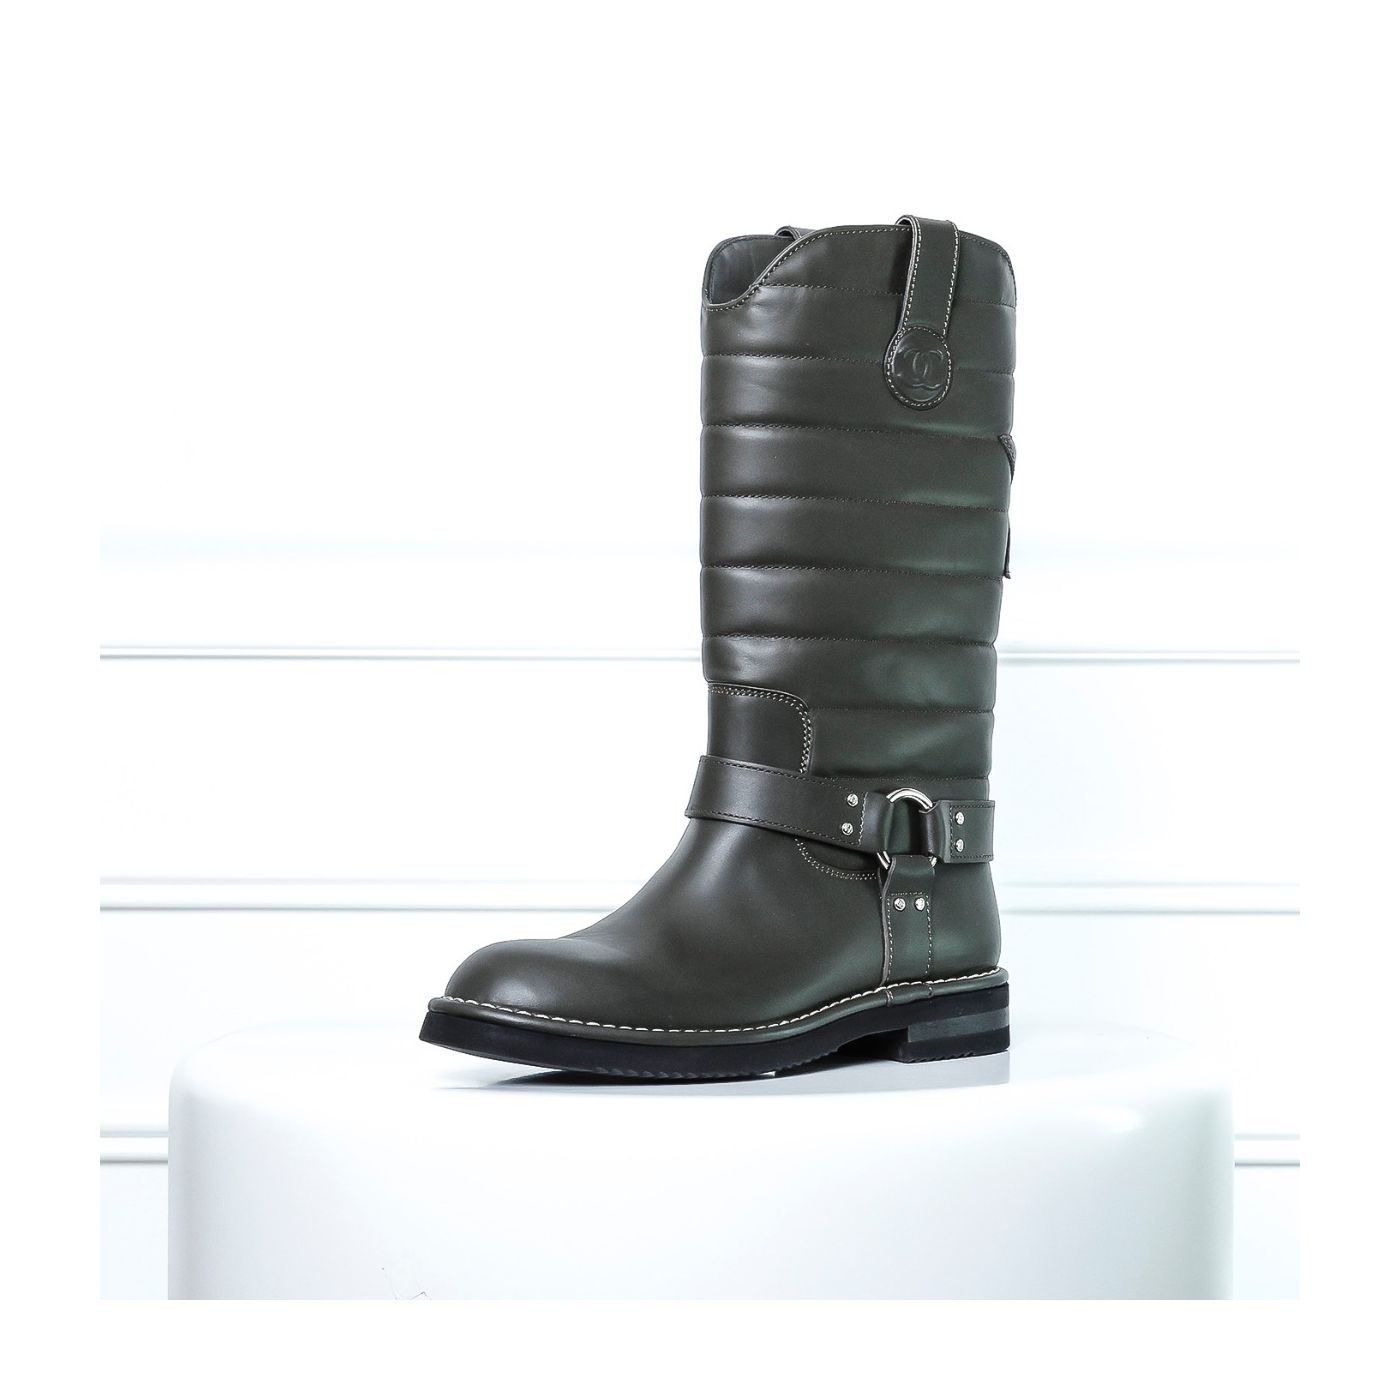 Chanel Navy Green Boots 39